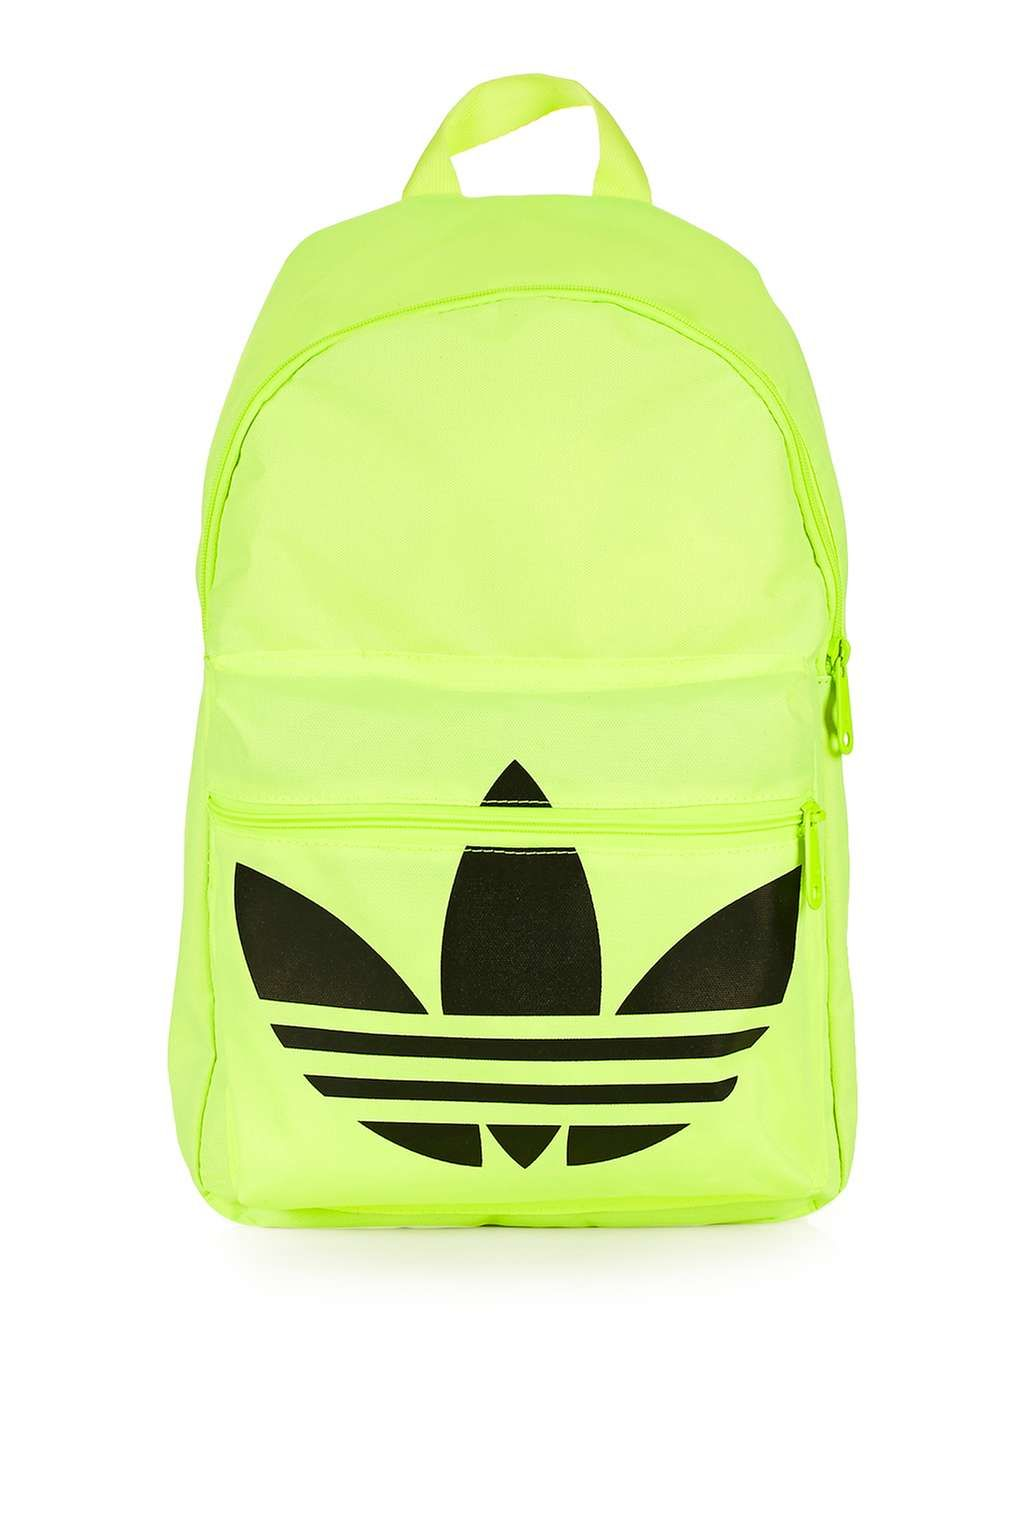 Trefoil Originals Adidas Topshop Backpack New In Singapore By IvgYb7yf6